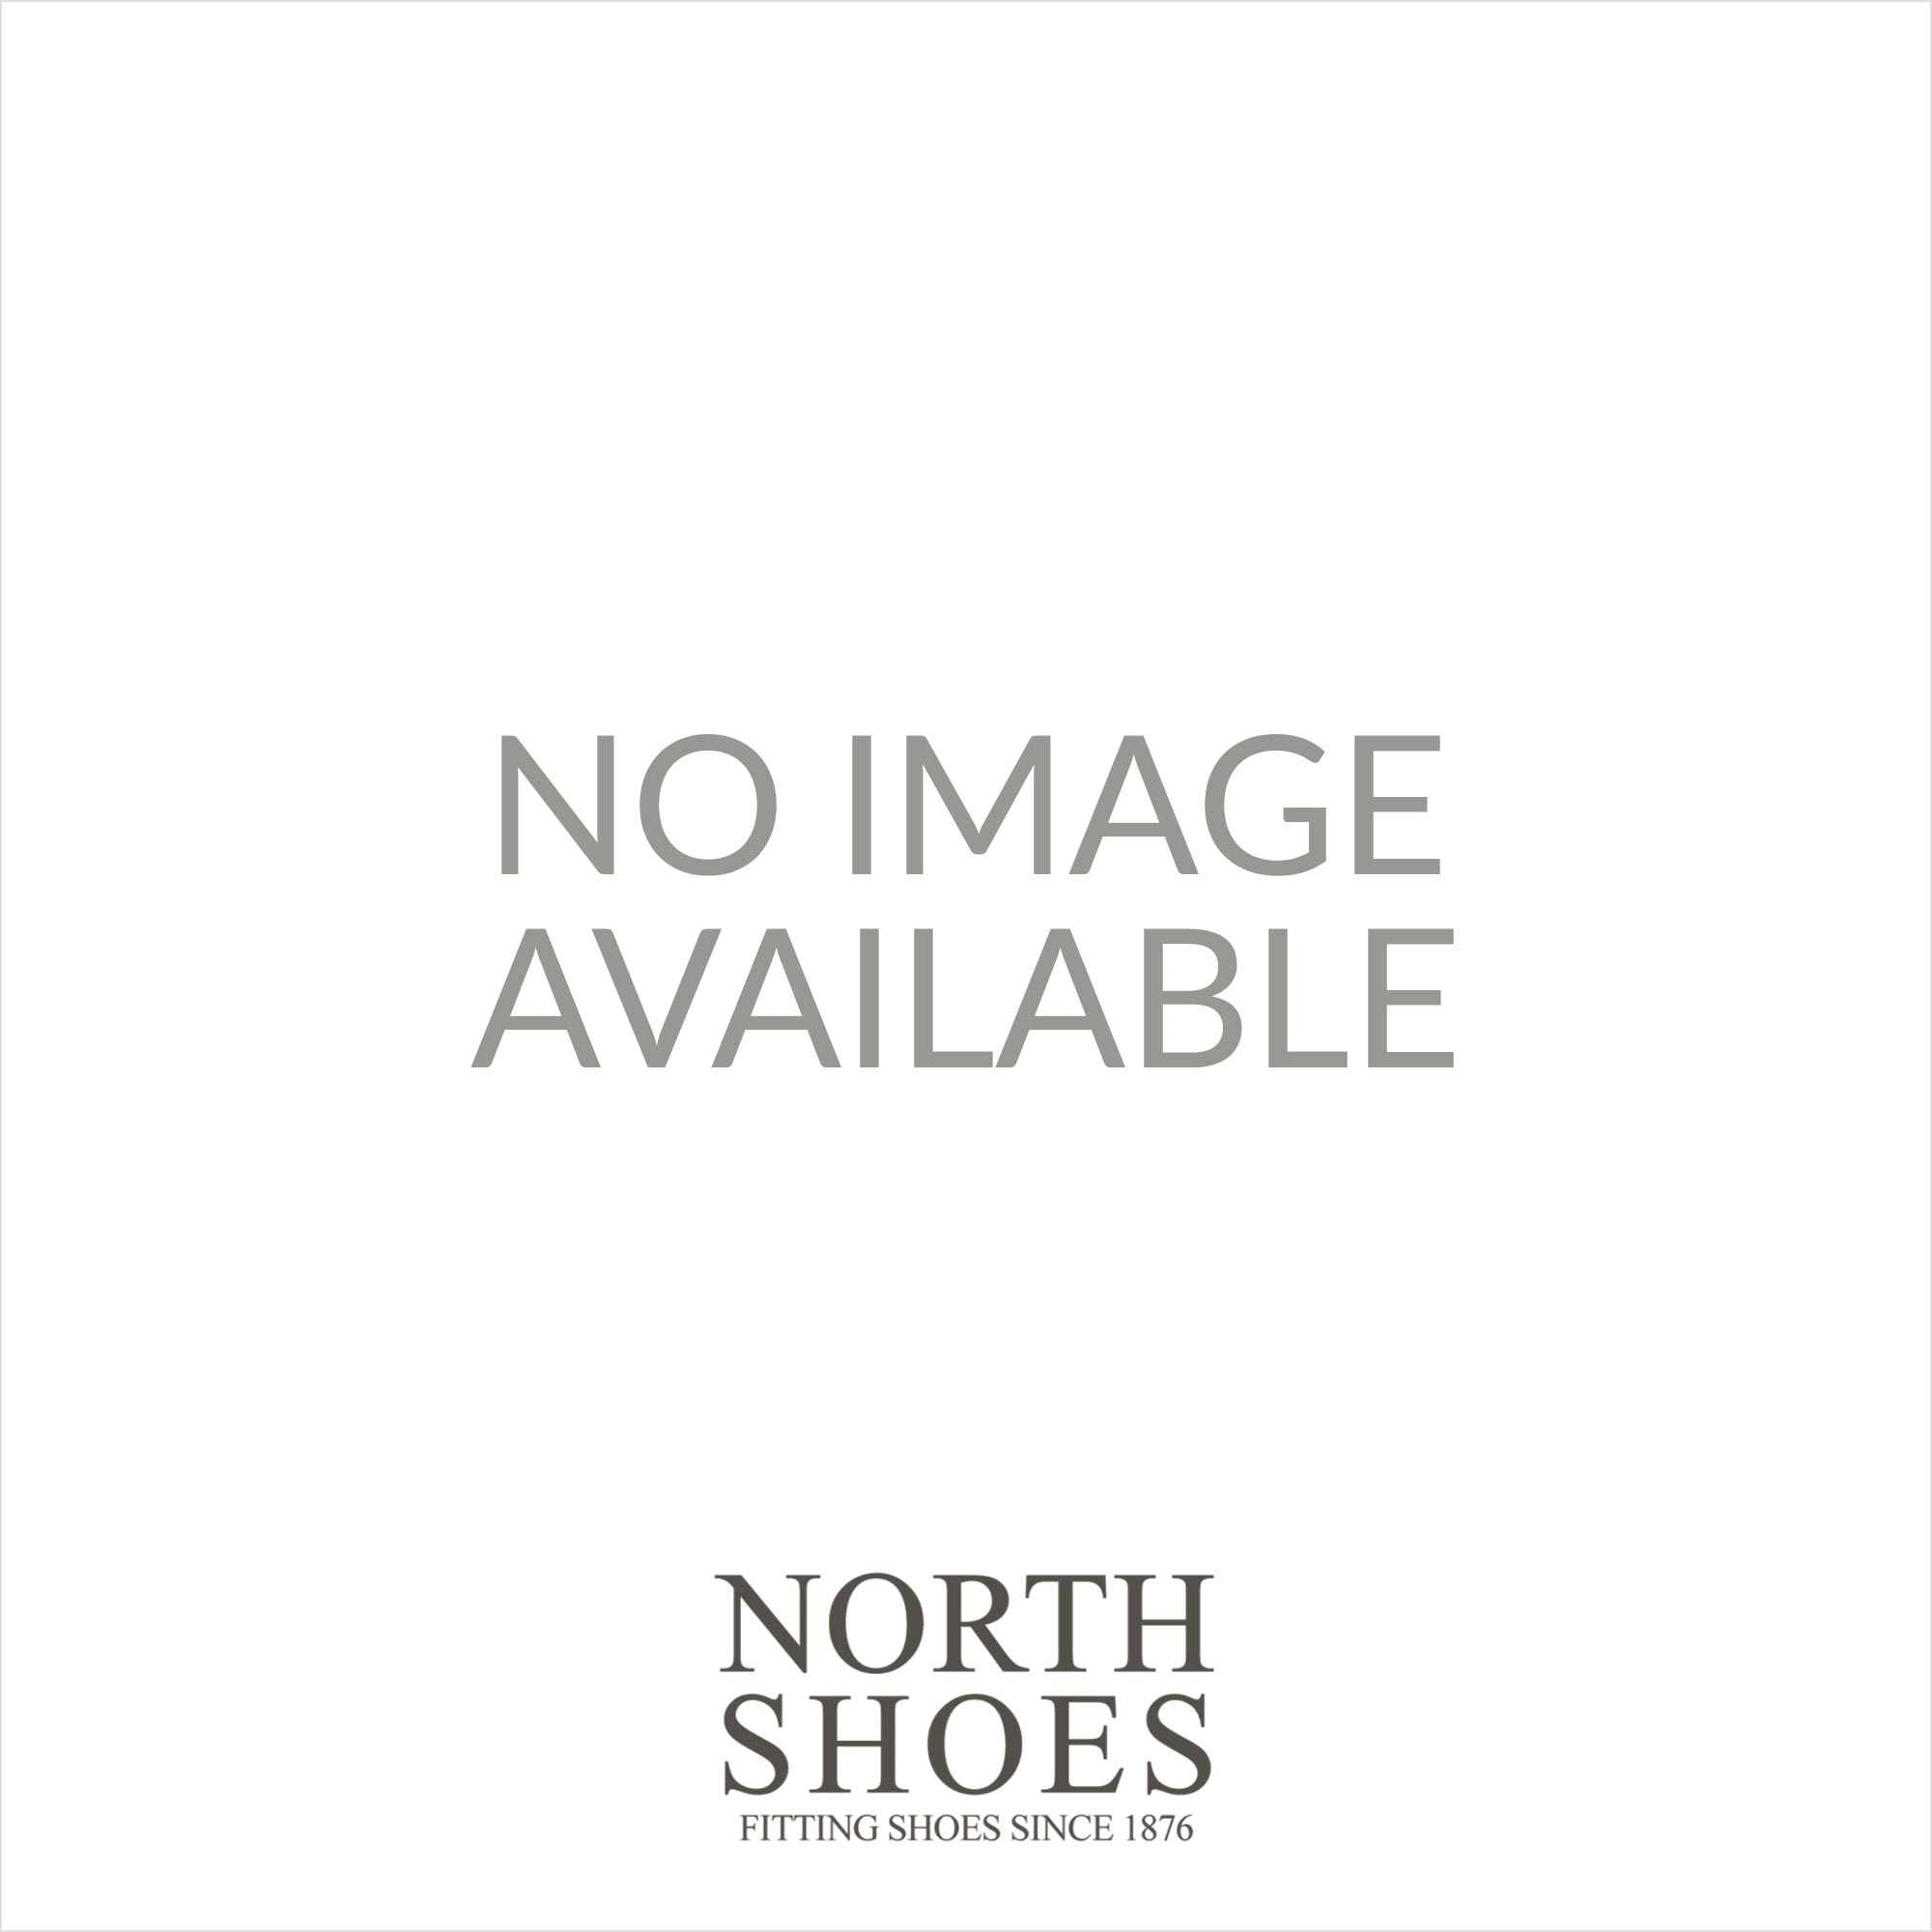 CONVERSE 656006C Blue Girls Shoe - CONVERSE from North ...